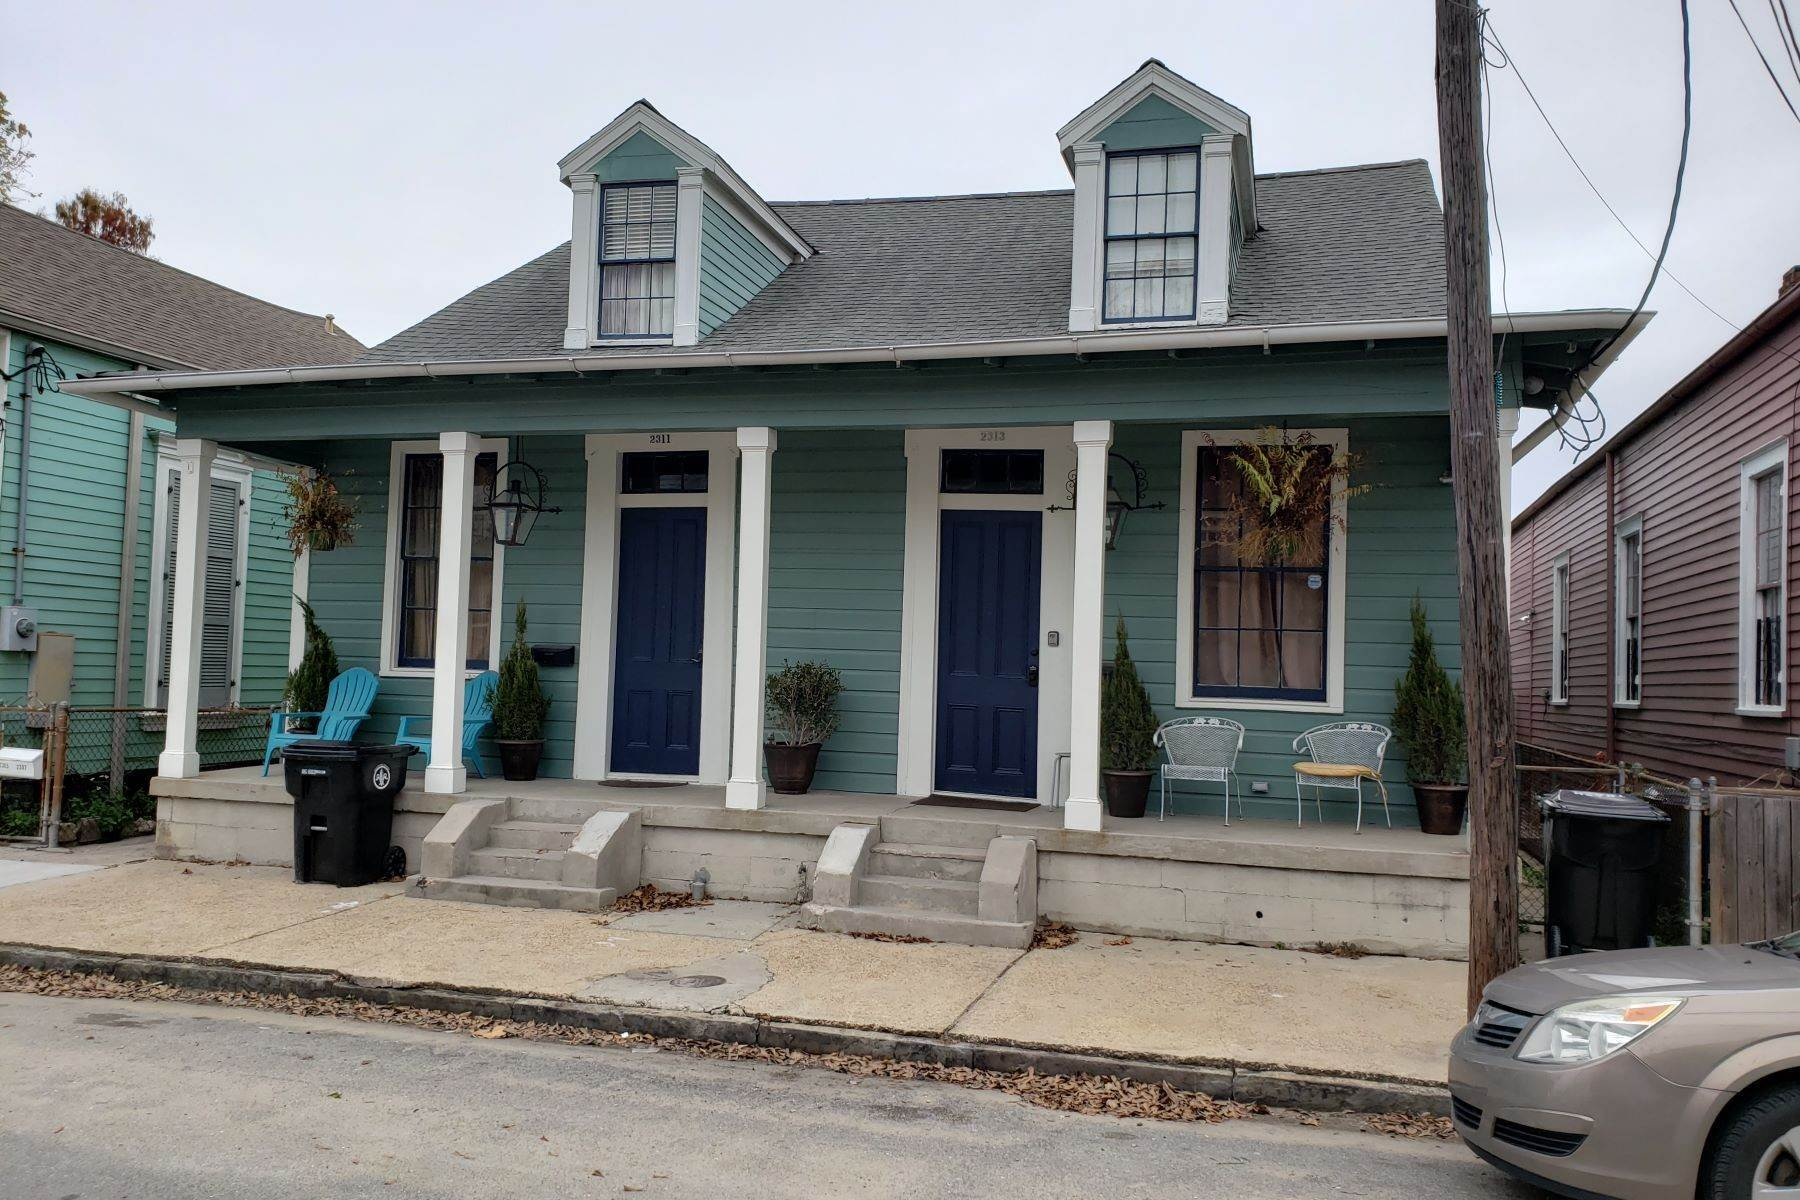 Single Family Homes for Sale at 2311 Royal St New Orleans, Louisiana 70117 United States